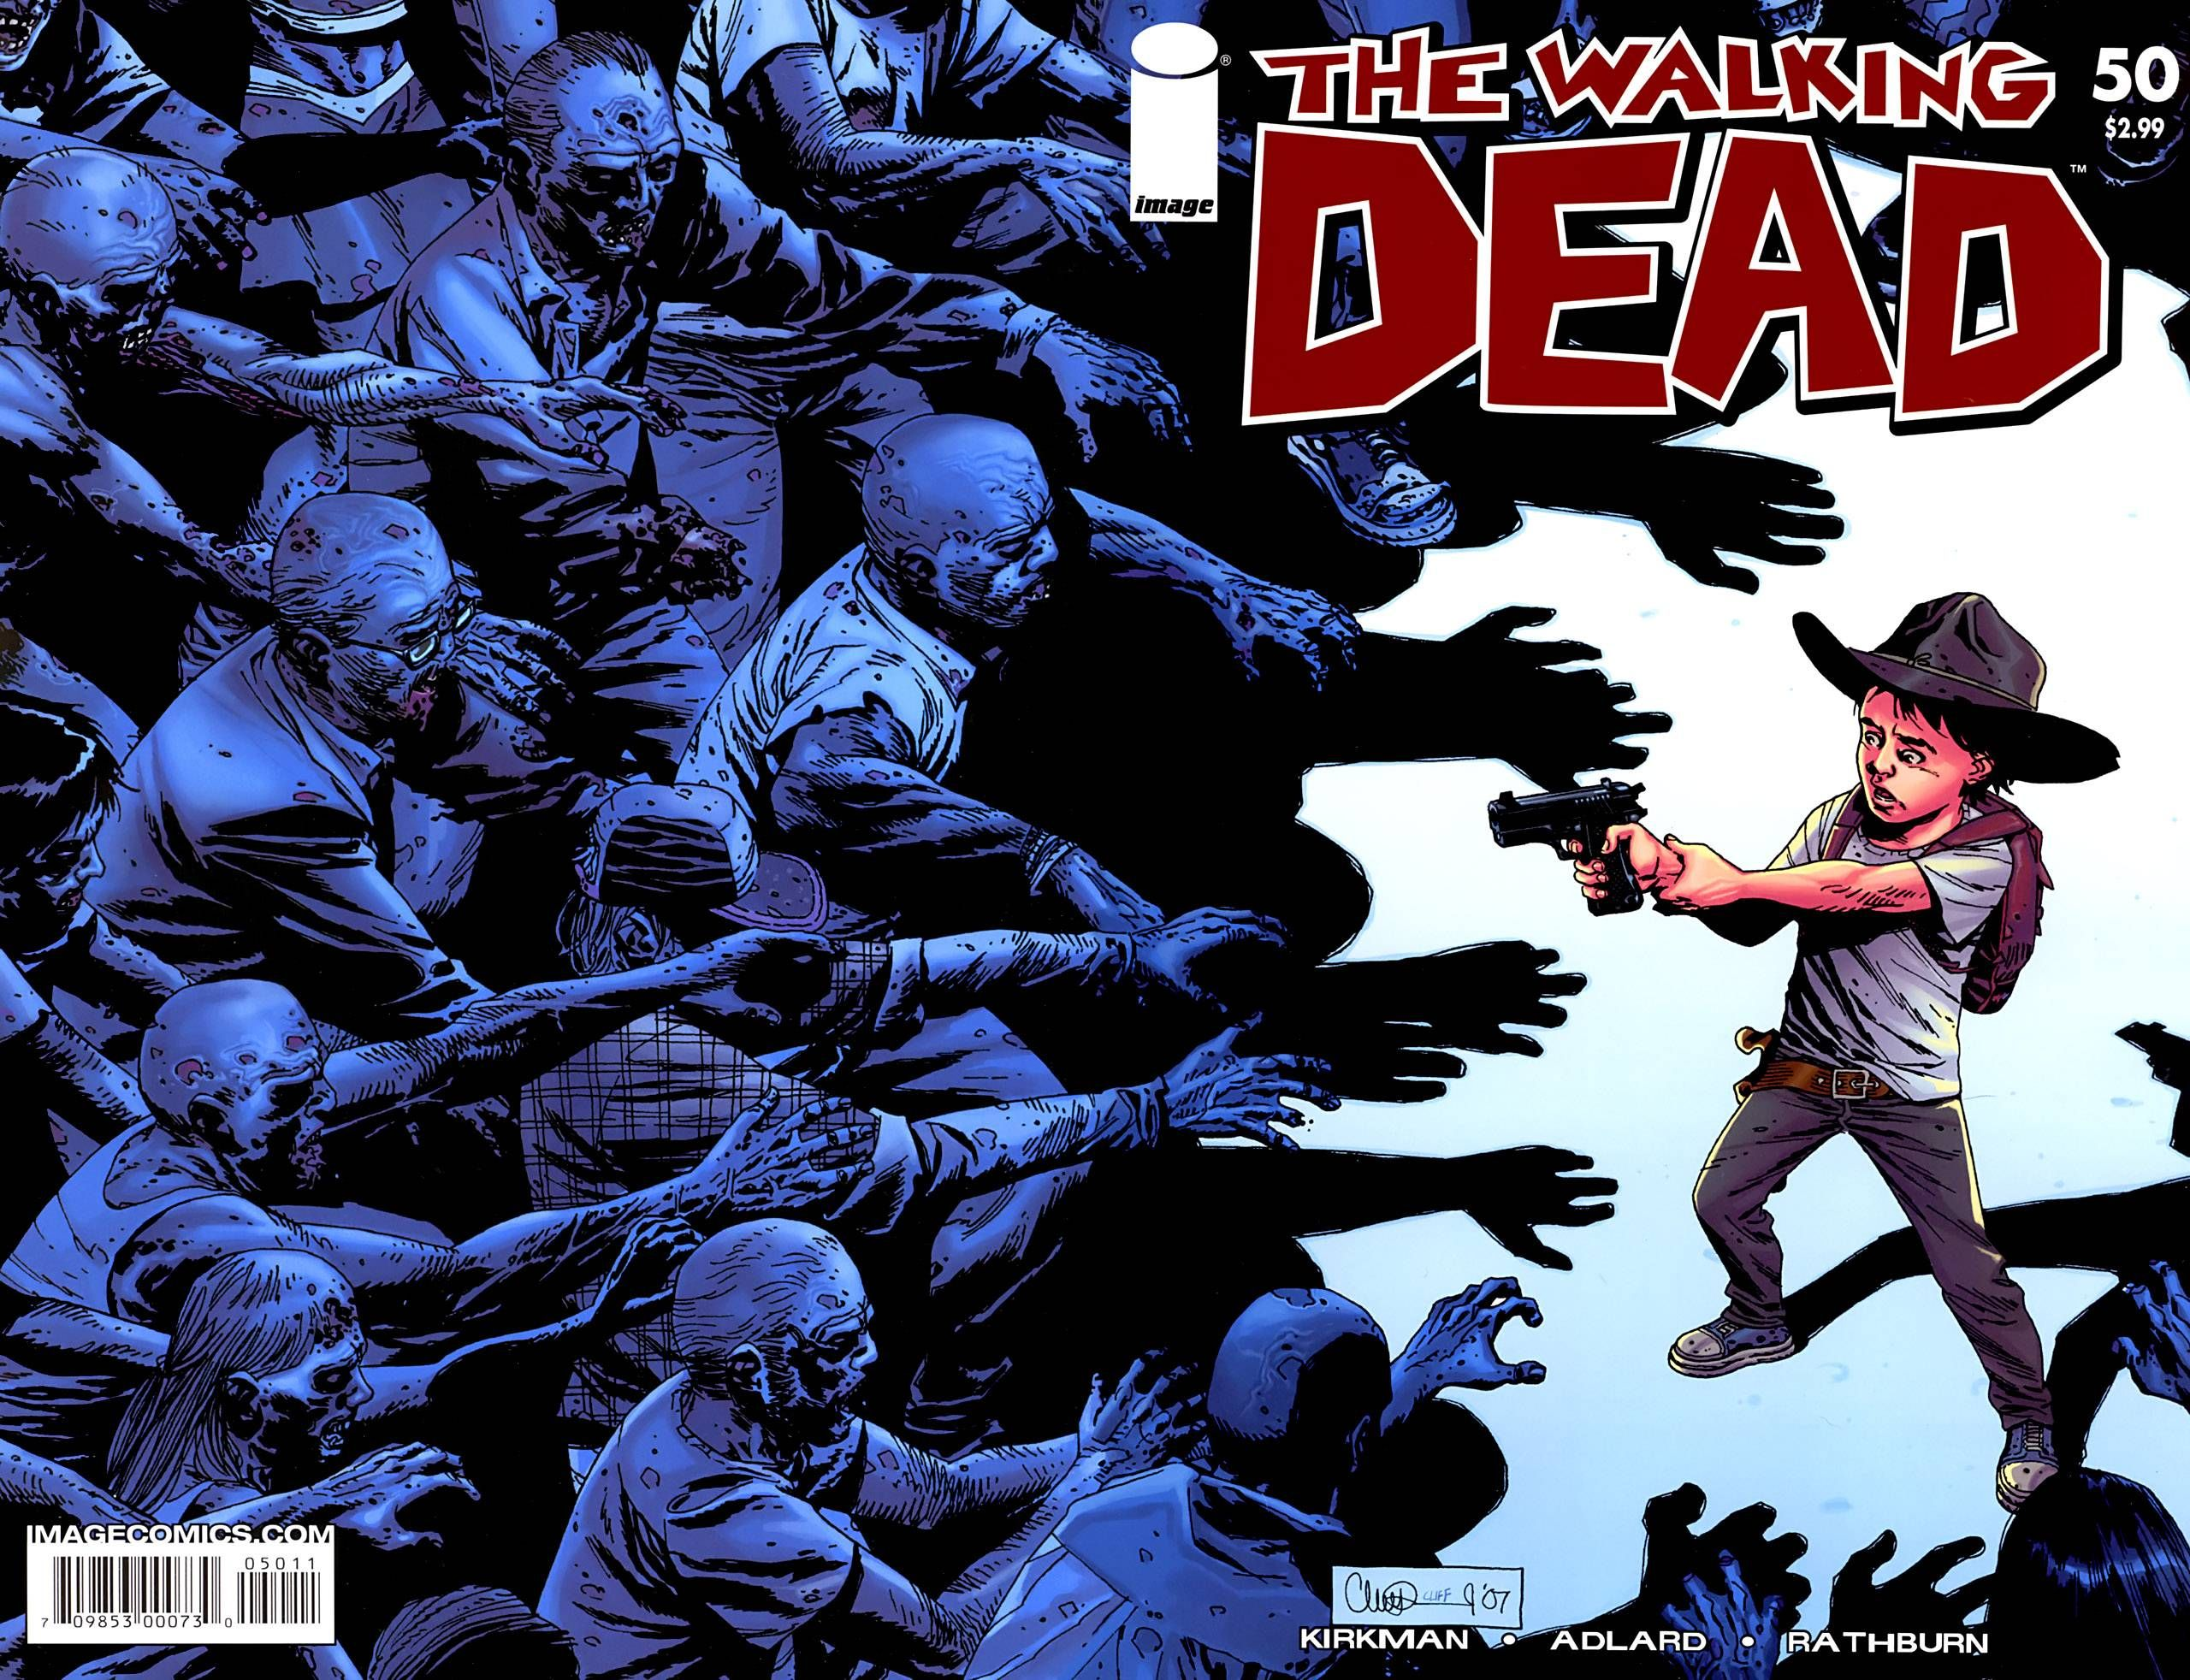 Download The Walking Dead Comic Book Wallpaper Gallery